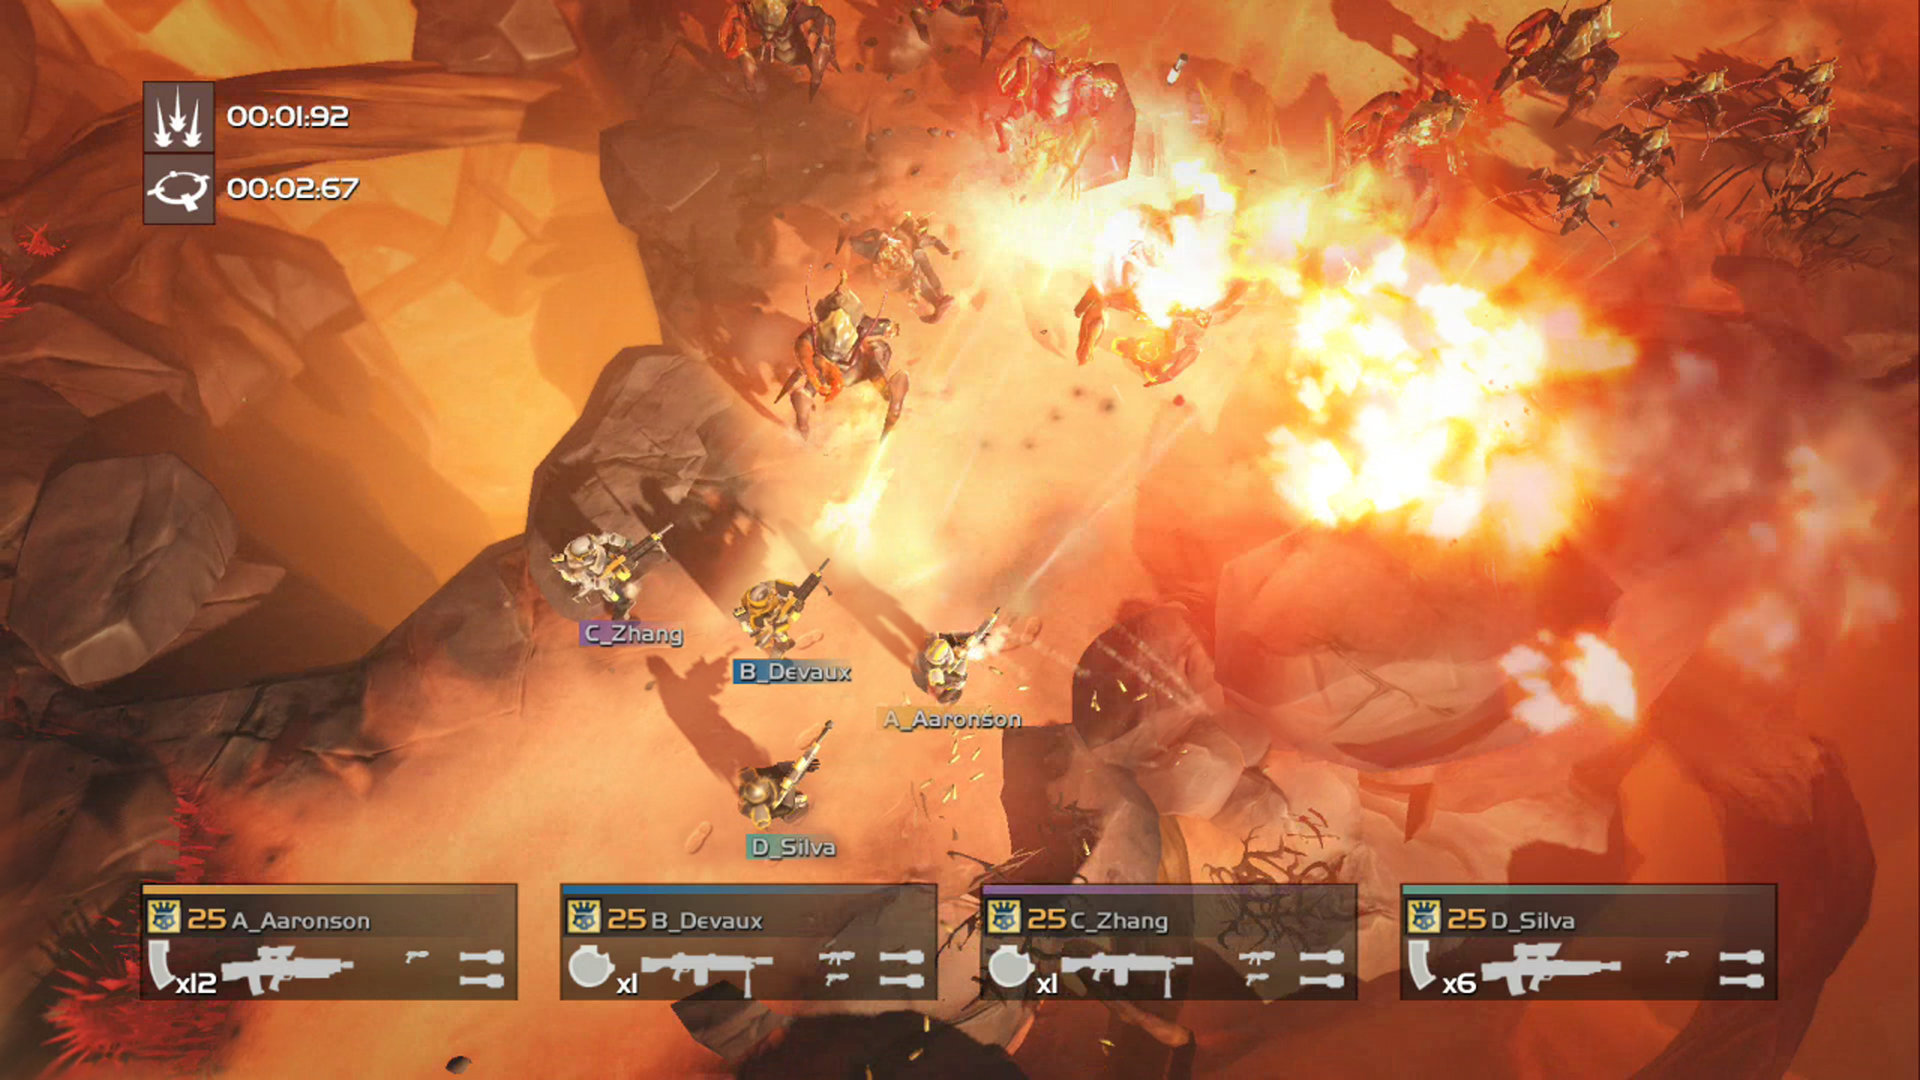 Space shooter Helldivers is one of the PlayStation Plus games for February